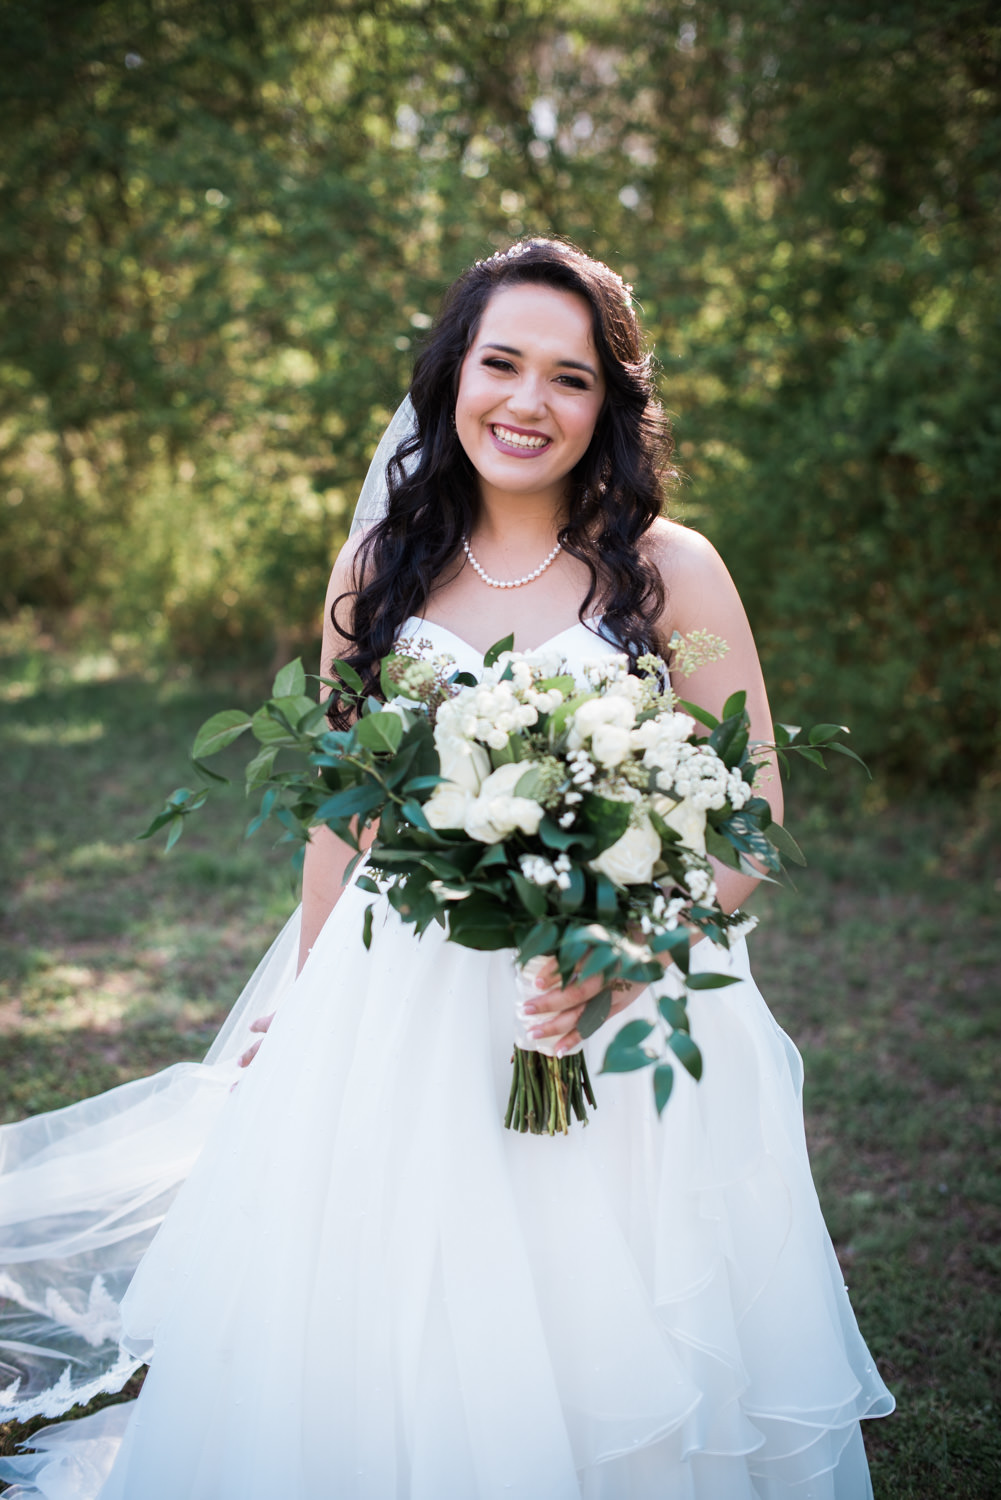 Athens-wedding-smiles-50.jpg